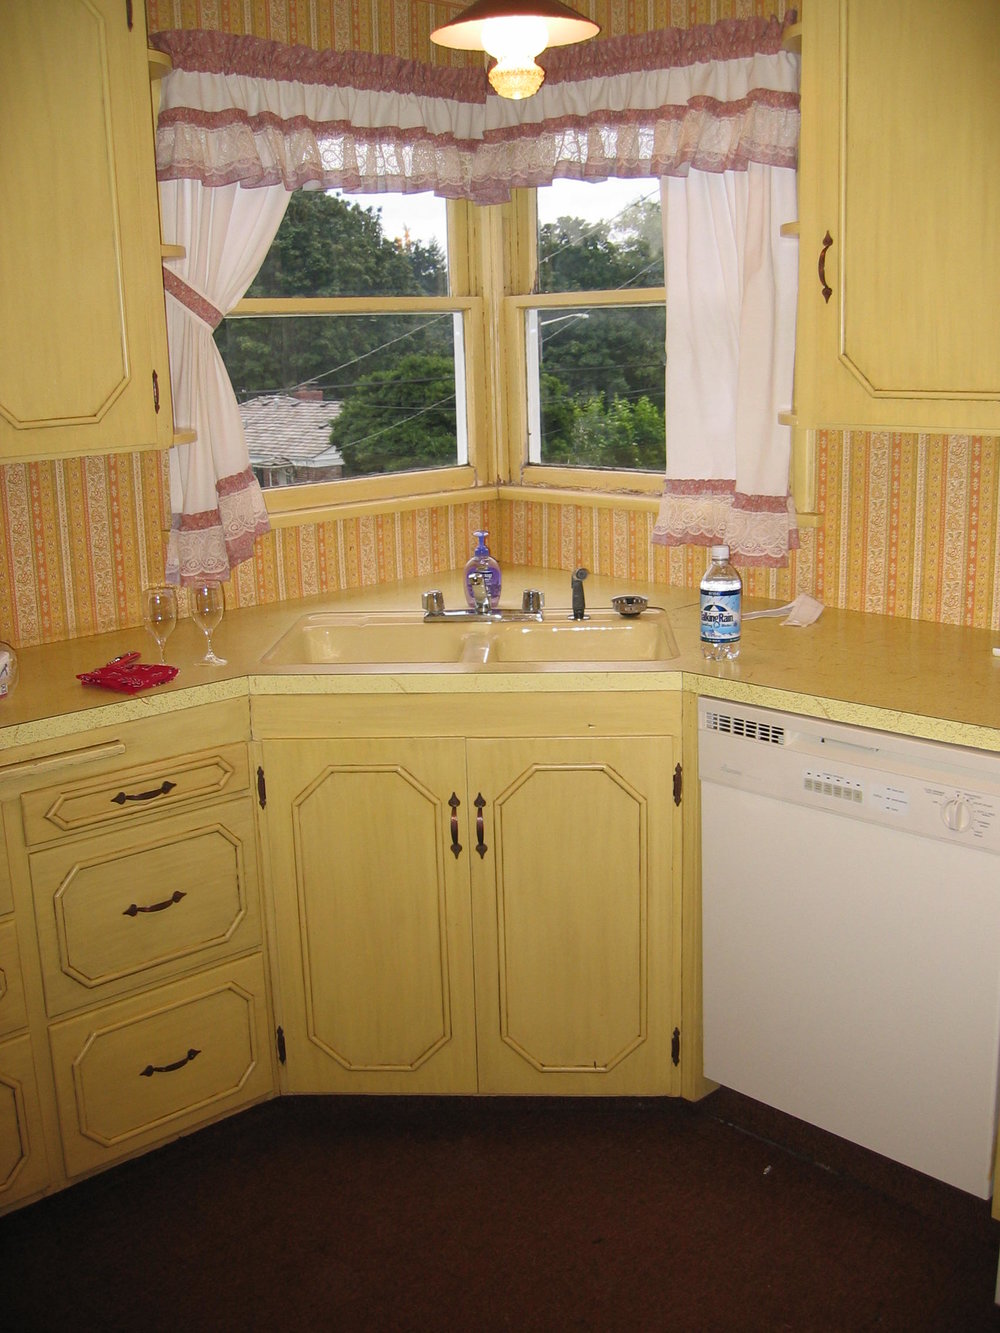 The Kitchen when we moved in in 2004